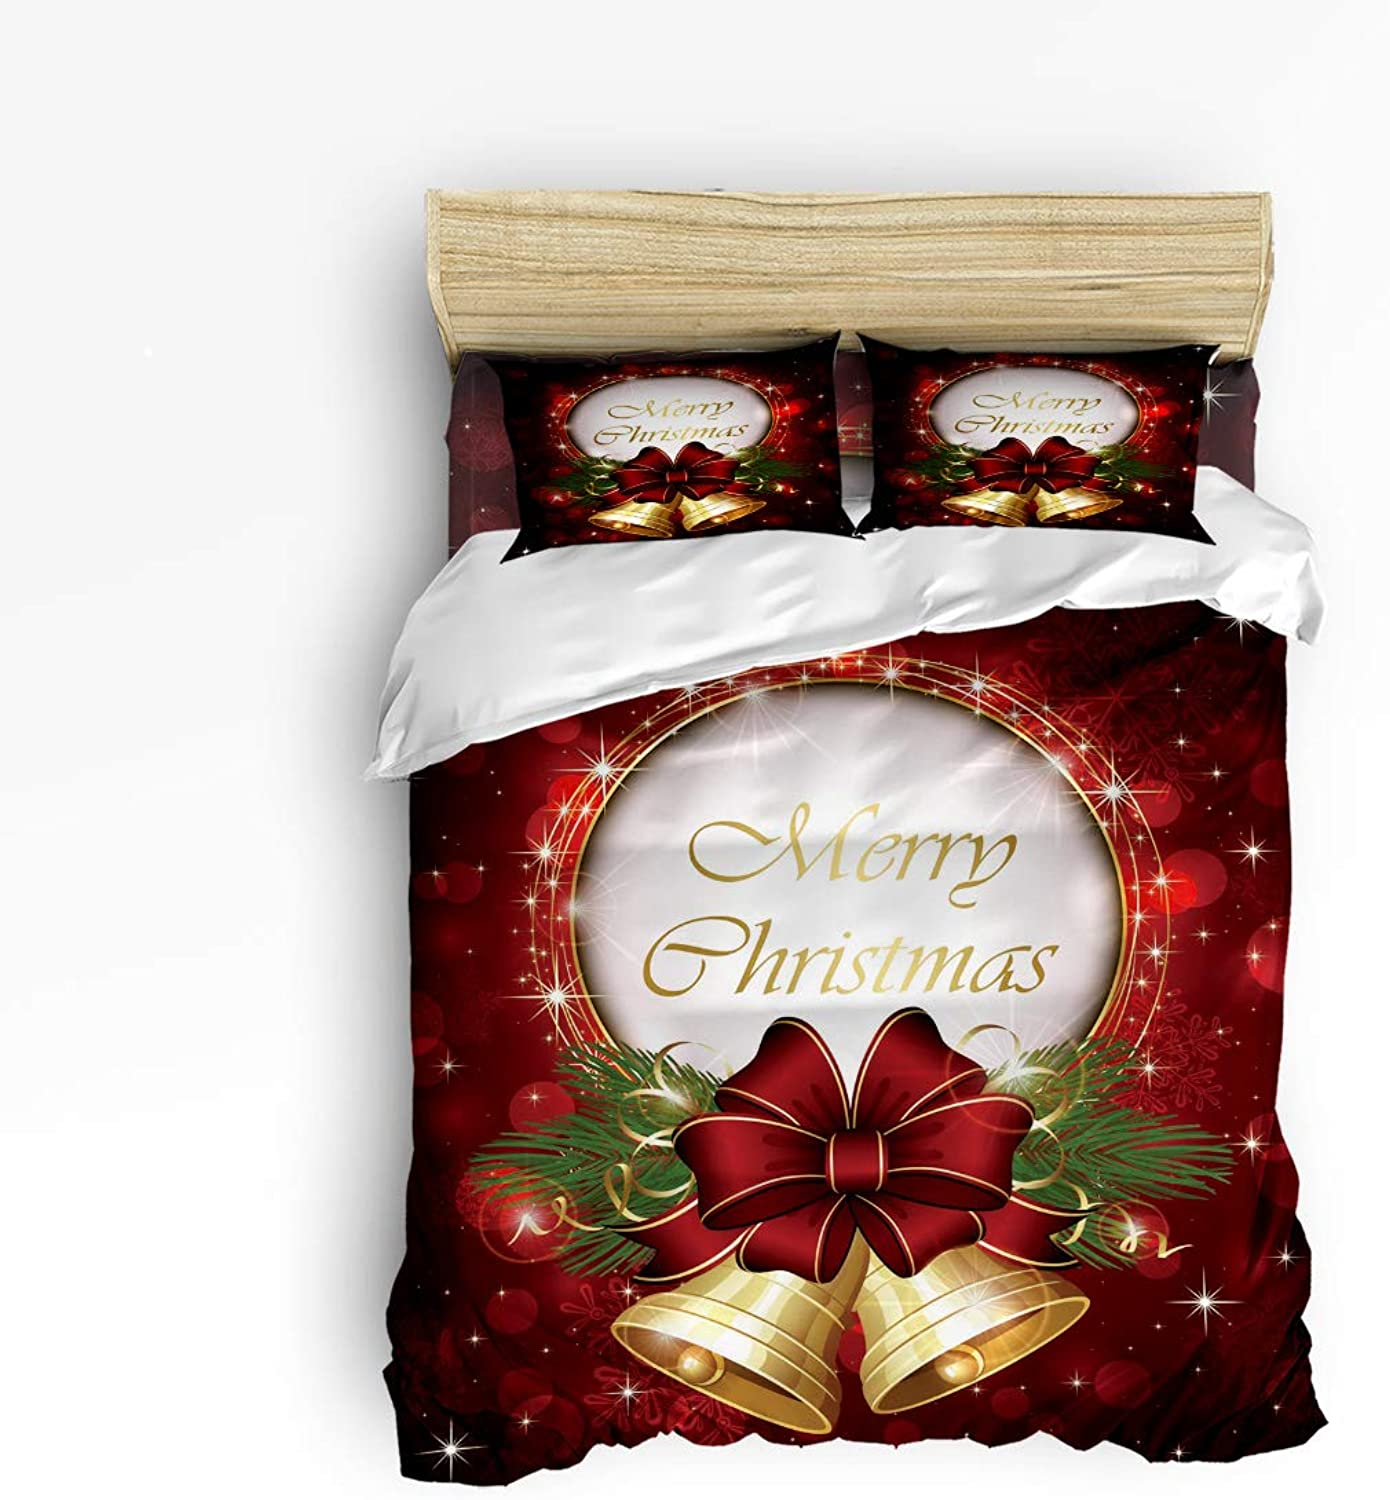 Fandim Fly Bedding Set Full Size Merry Christmas,Jingling Bell,Comforter Cover Sets for All Season